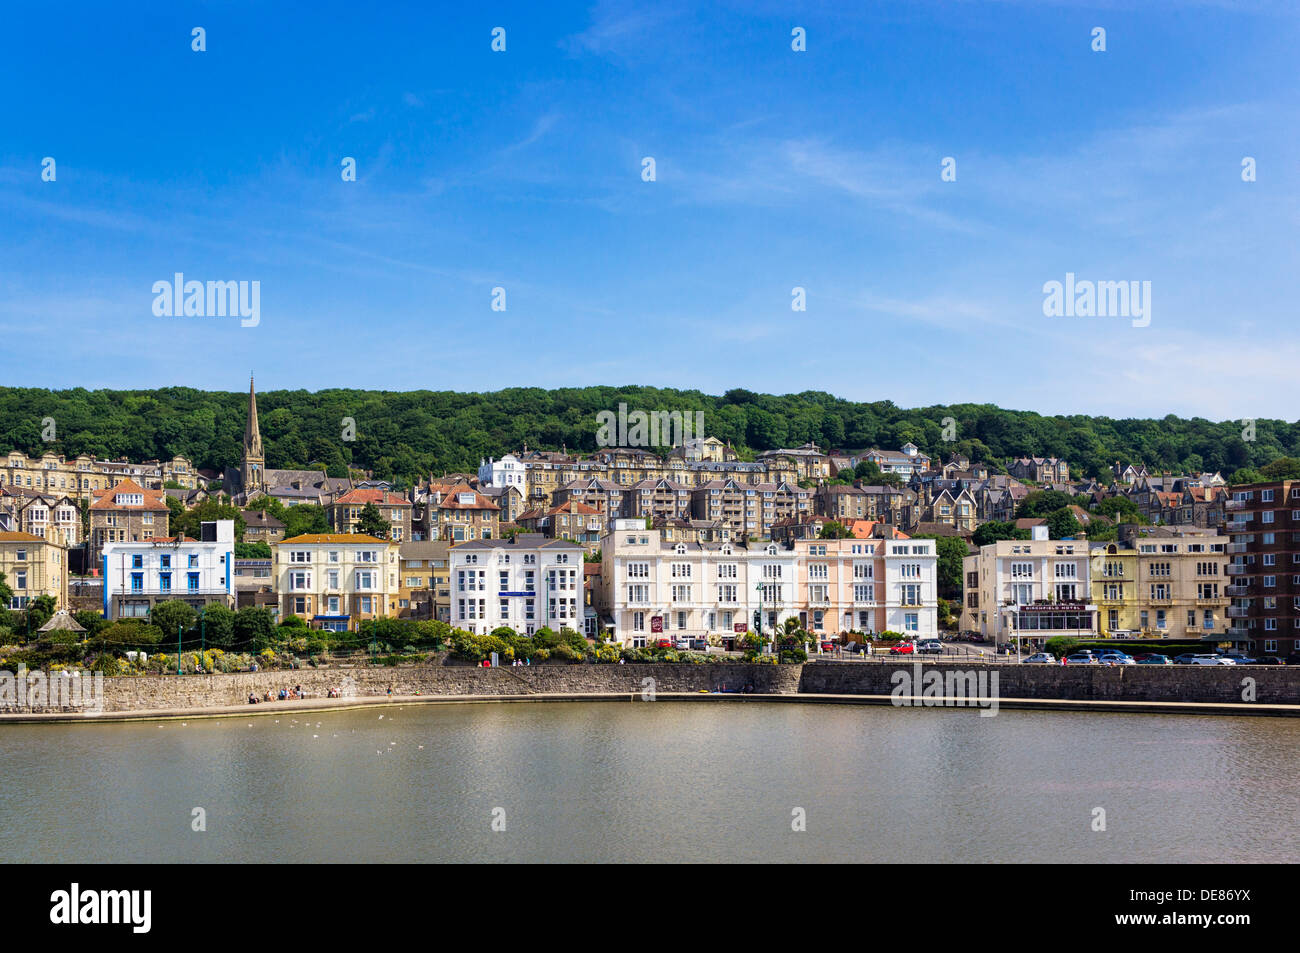 Weston Super Mare old town, Somerset, UK - Stock Image